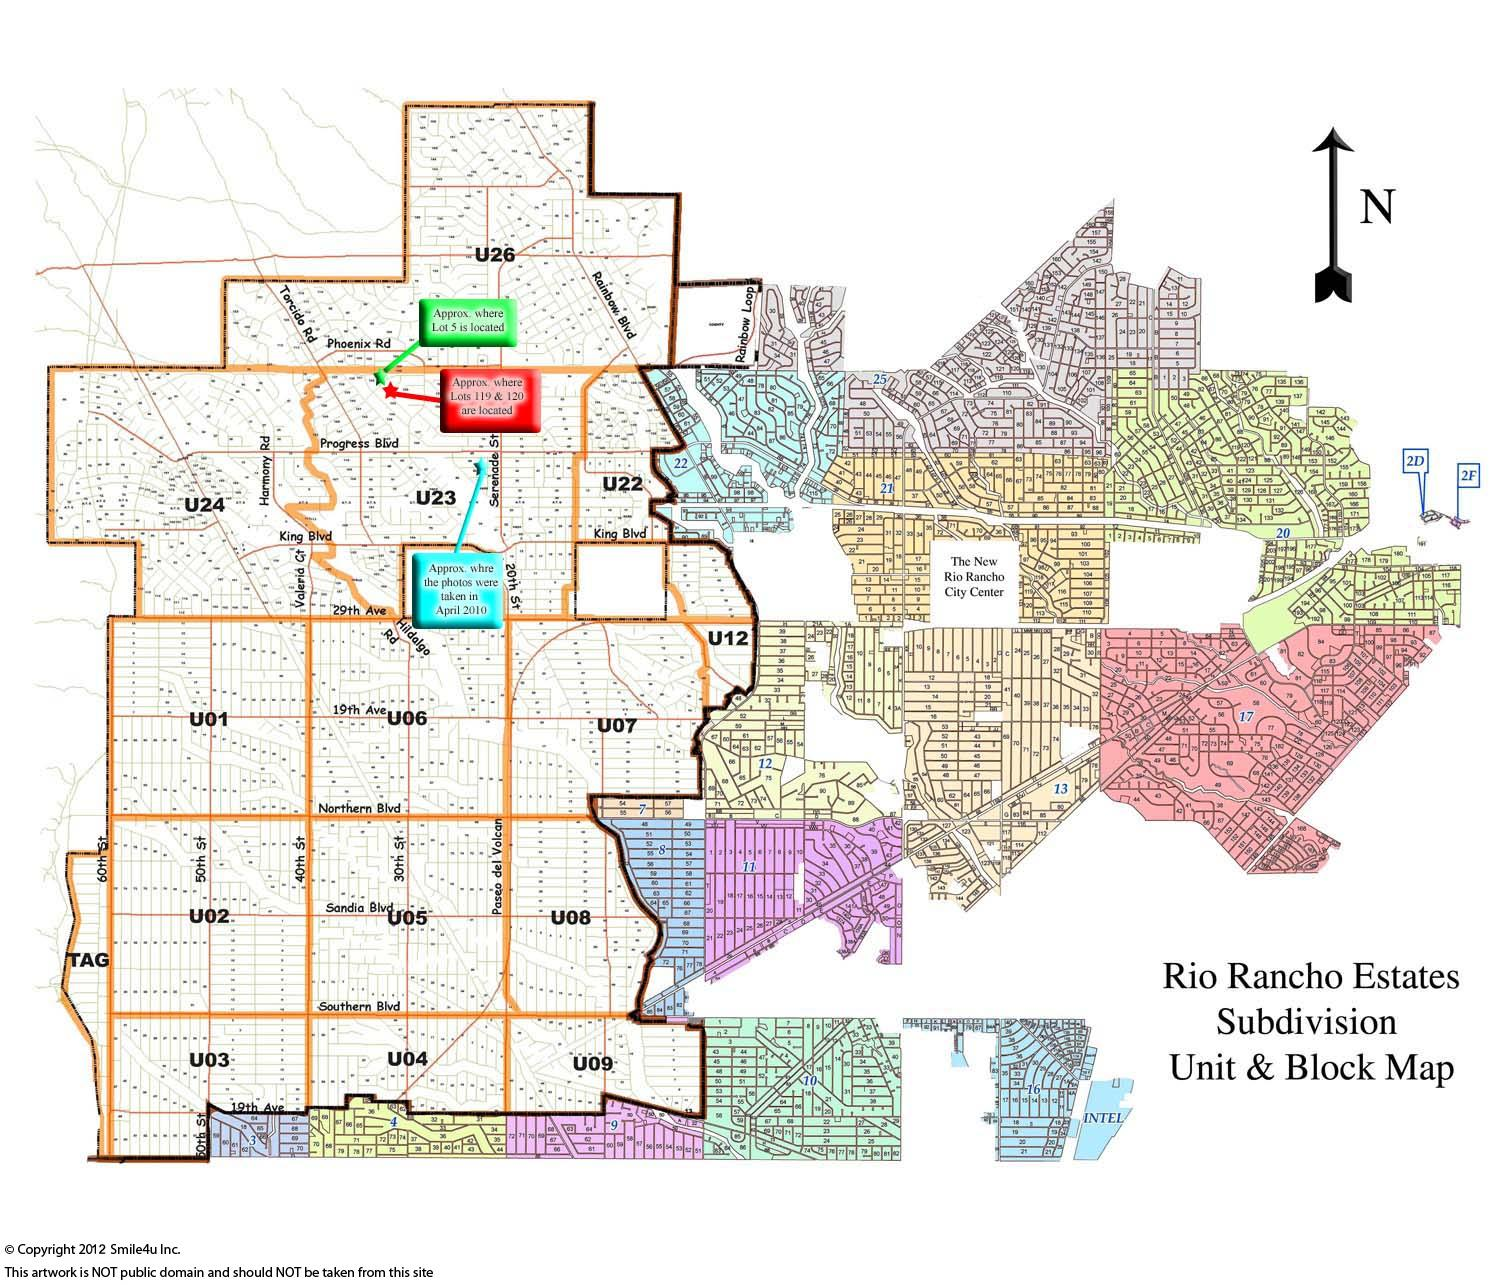 887088_watermarked_Rio Rancho Subdivision Unit Map.jpg